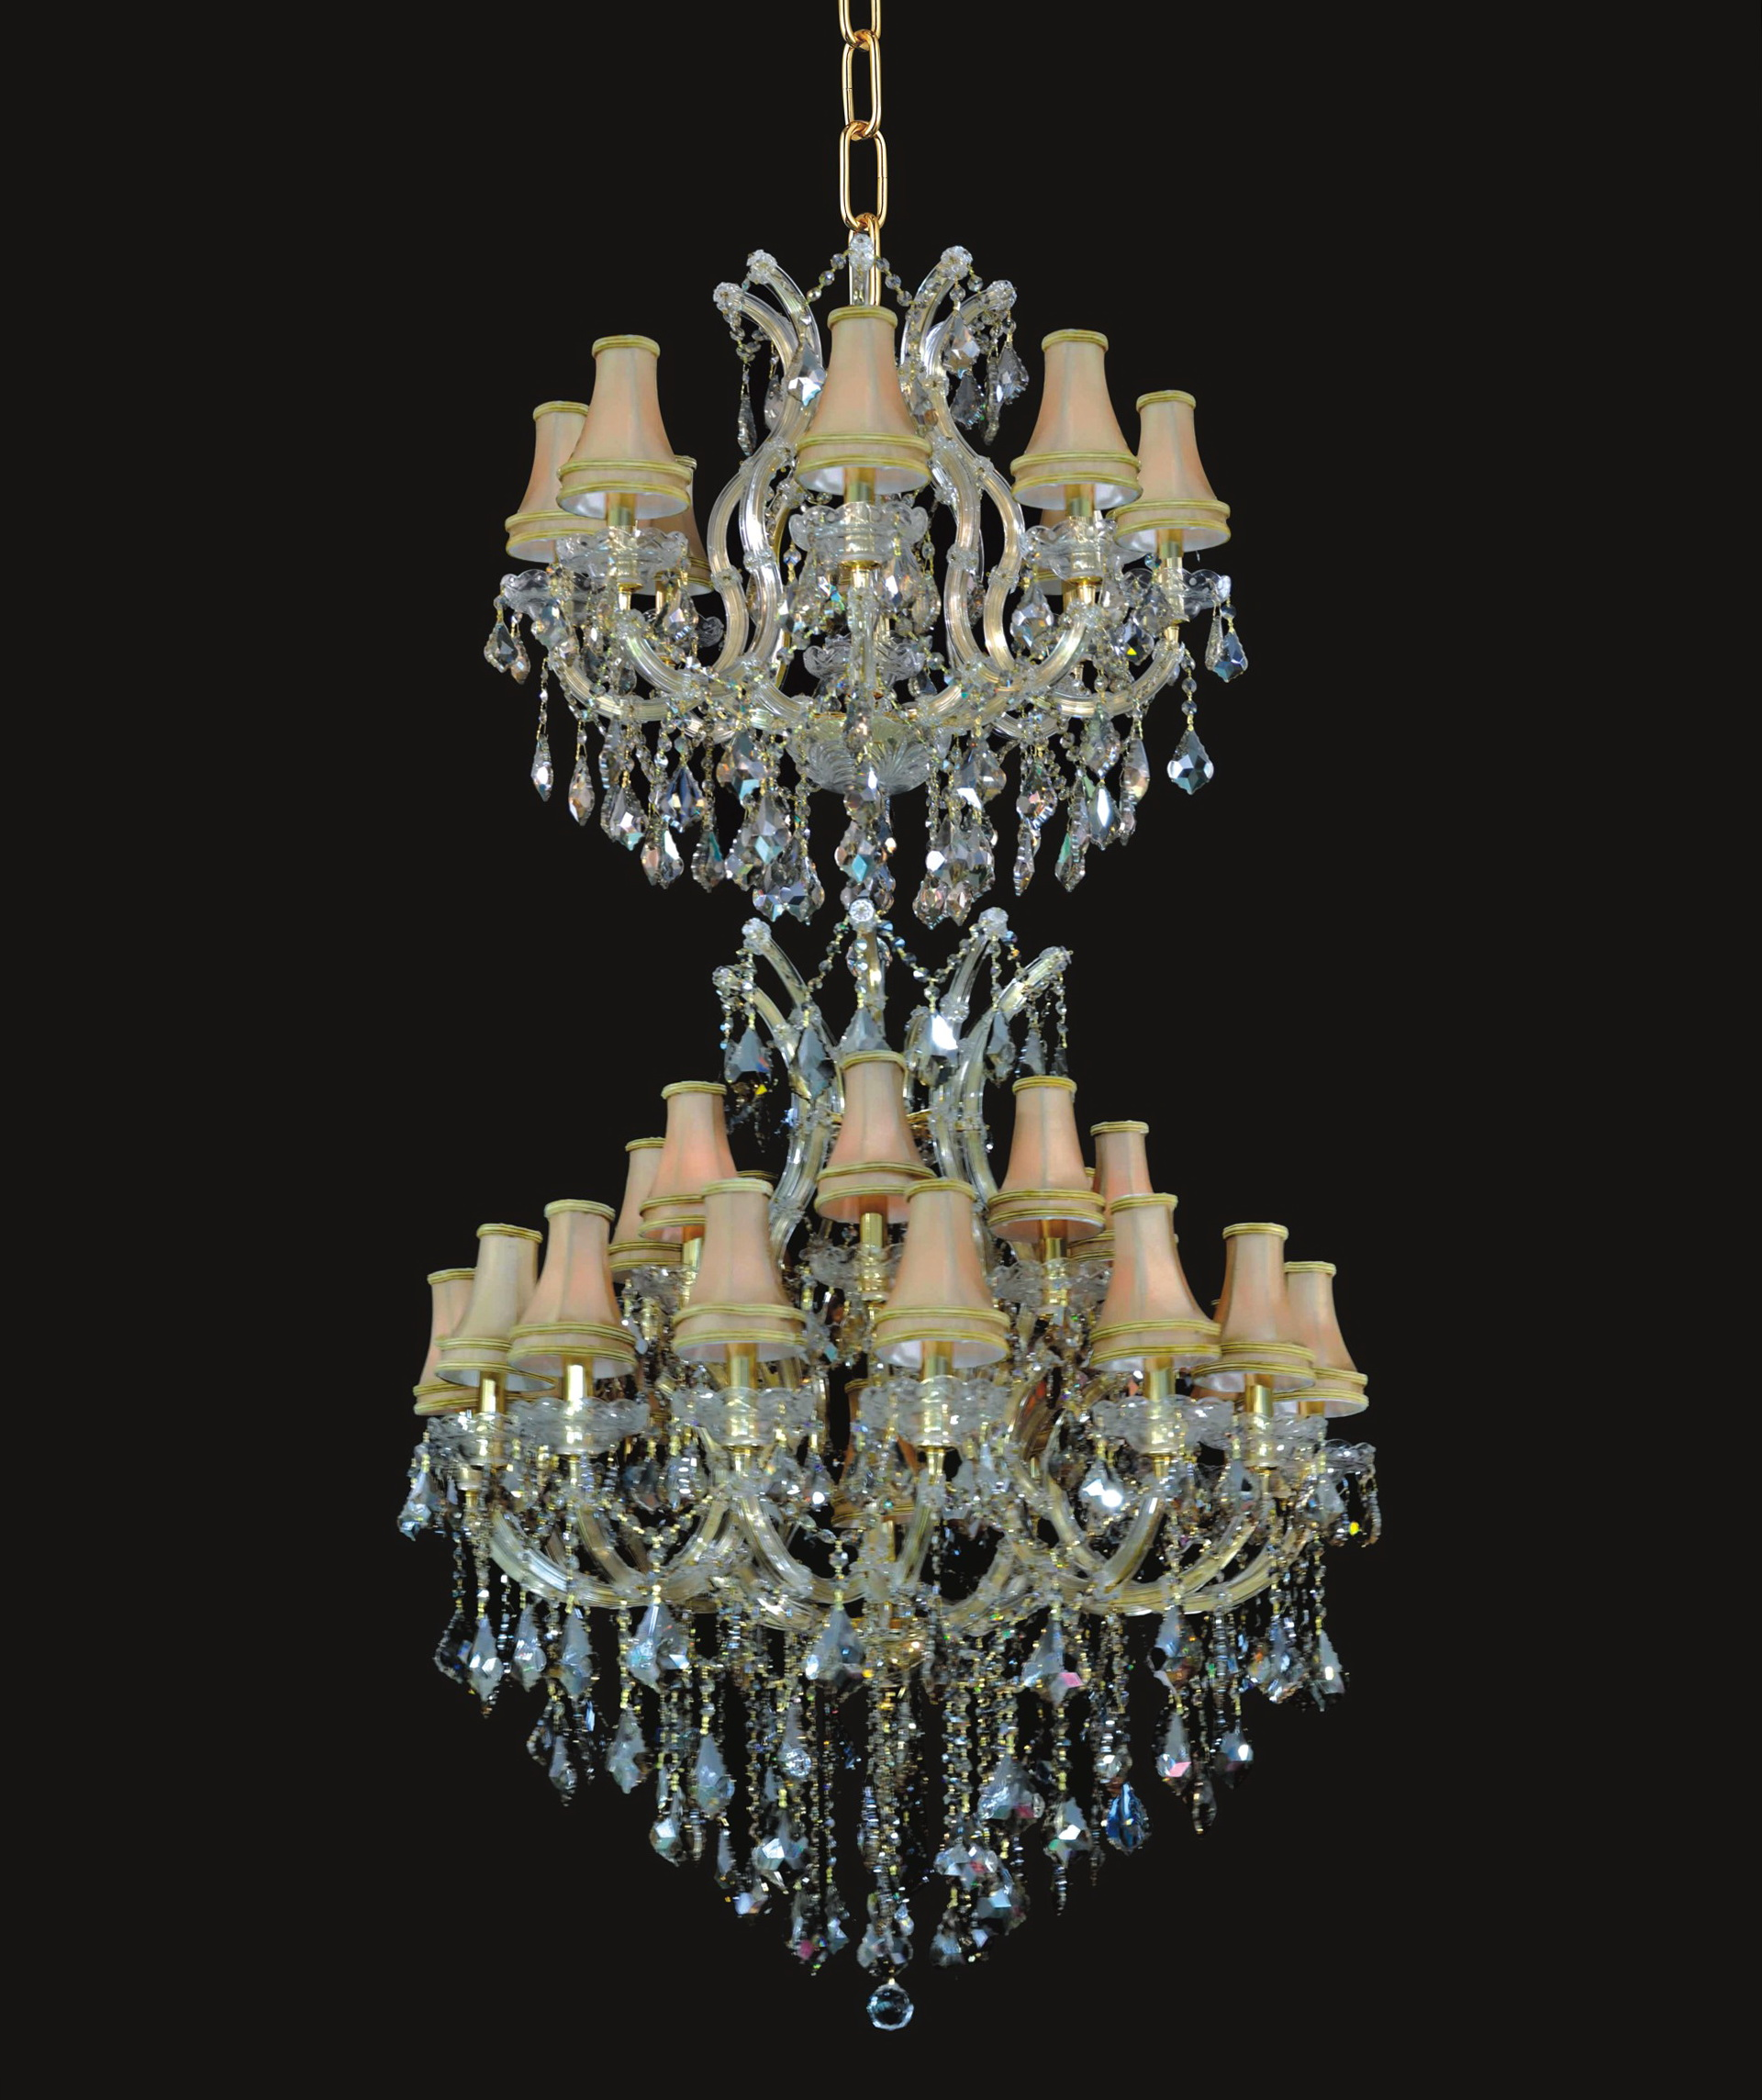 Cheap Crystal Chandeliers For Weddings Home Design Ideas